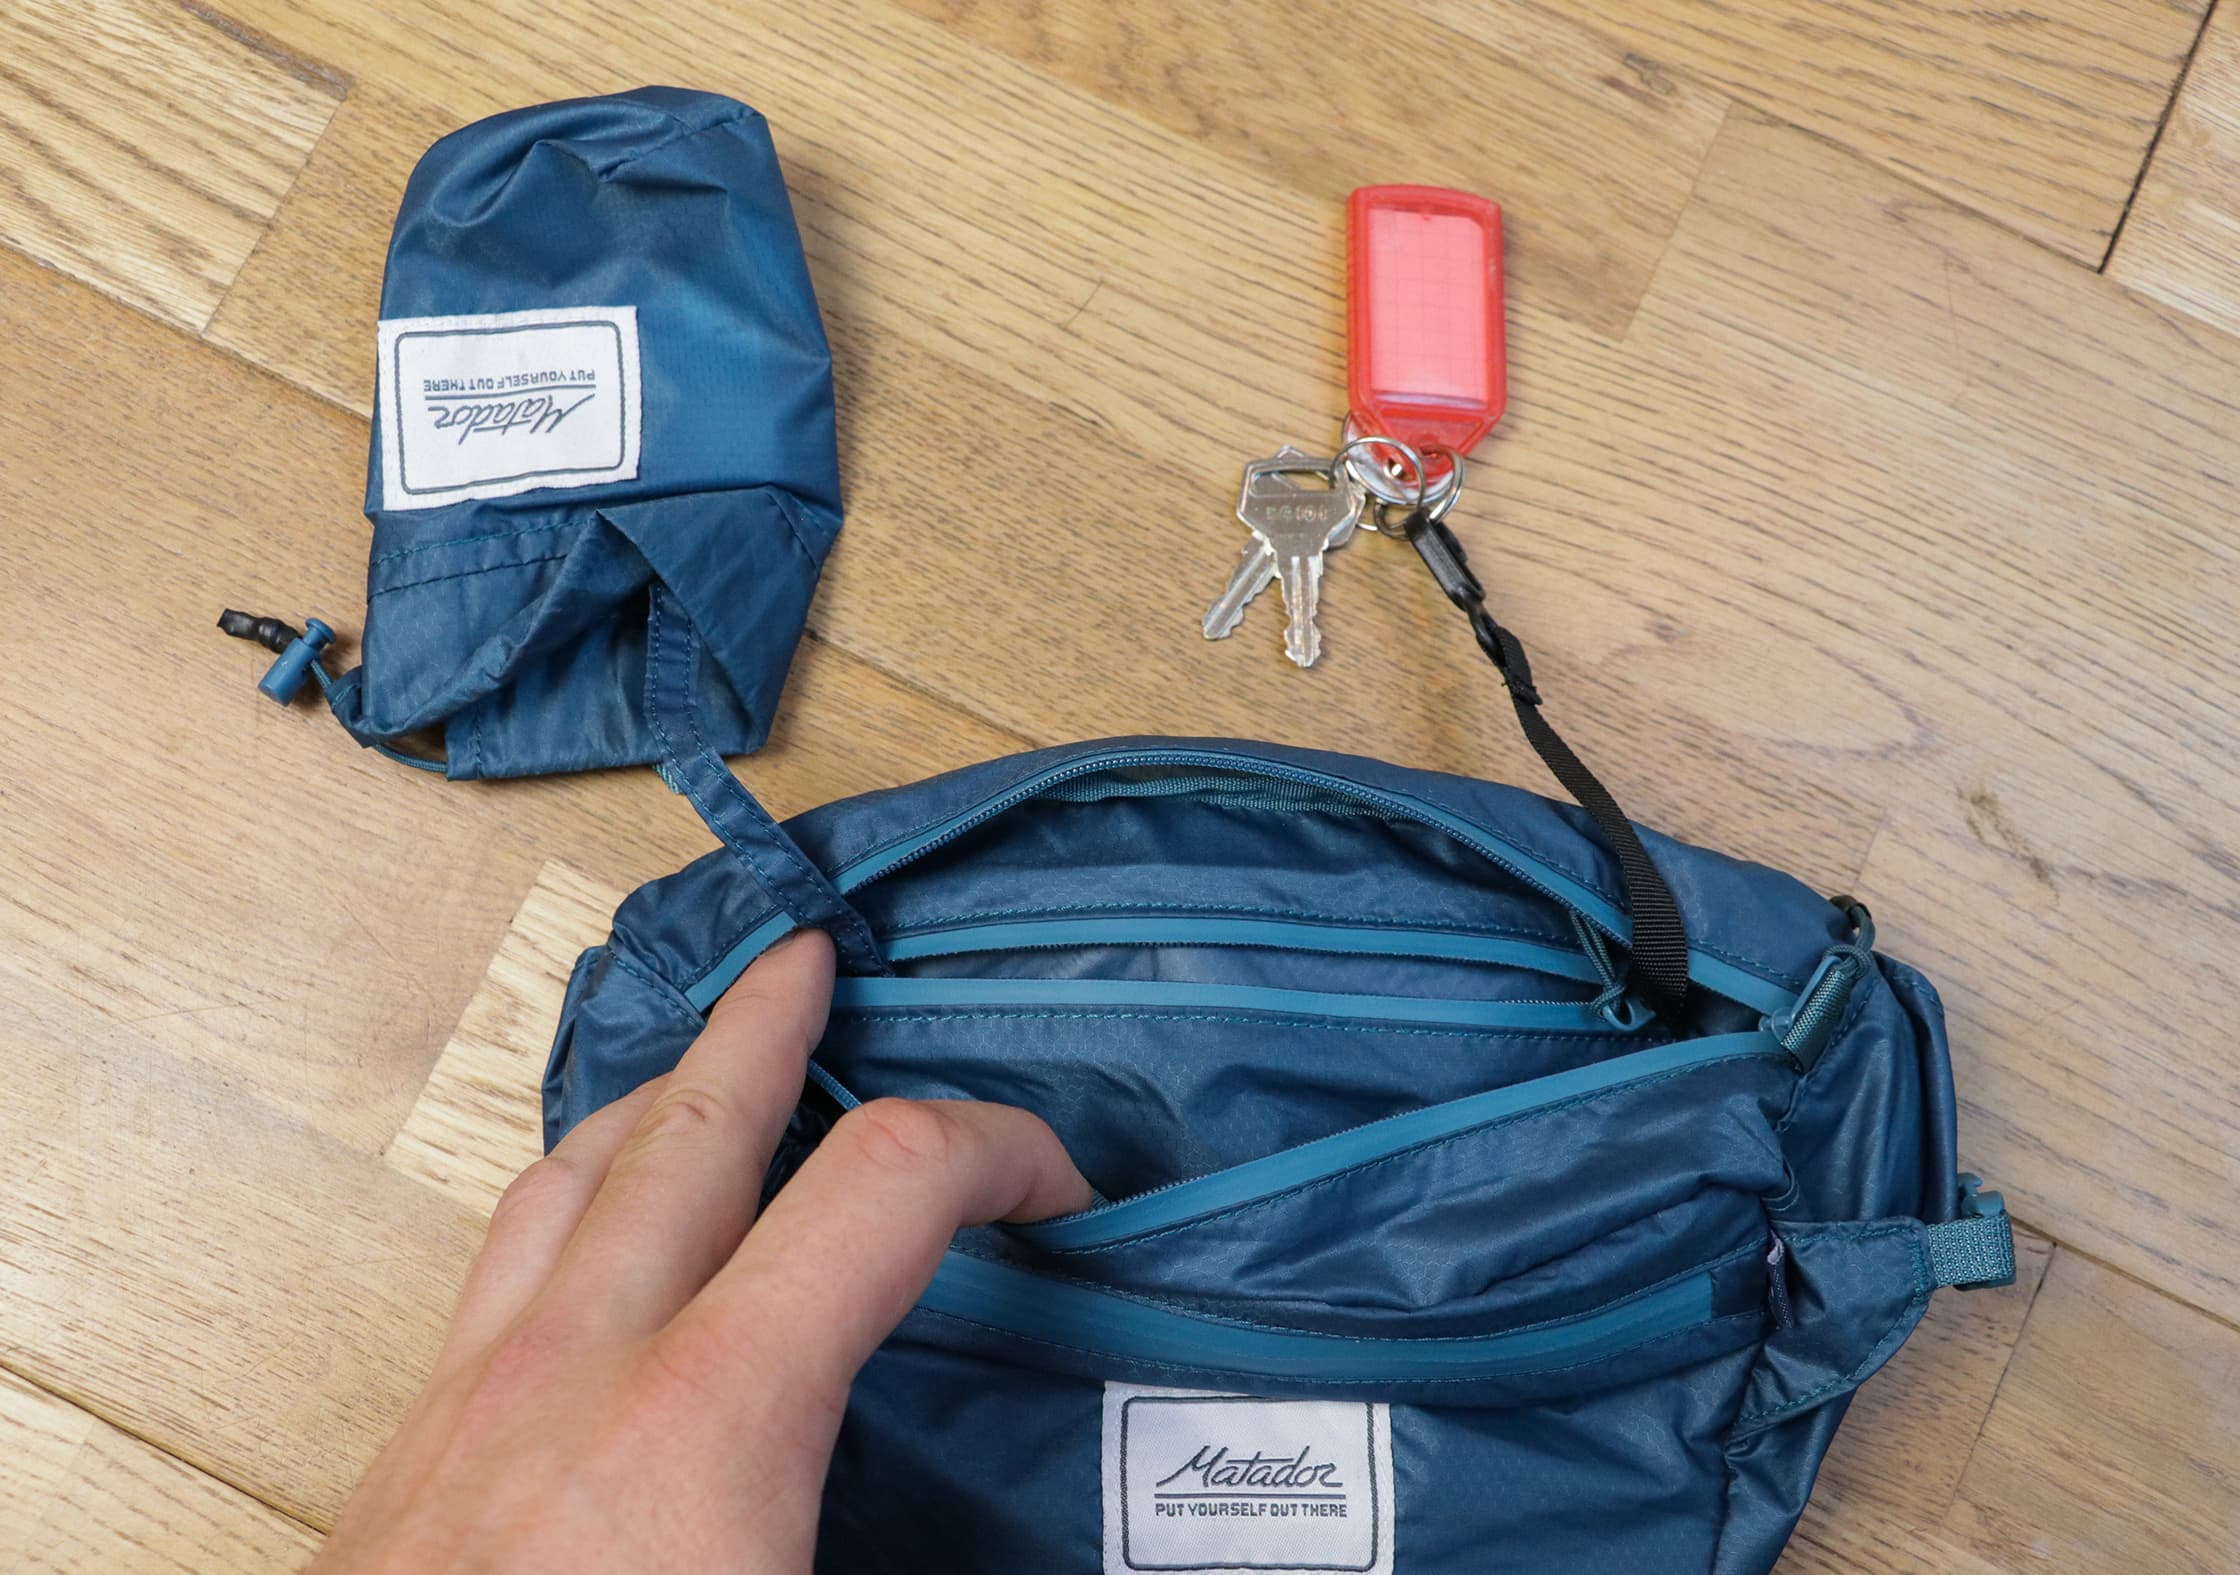 Attached Compression Sack, Internal Compartment, And Key Clip